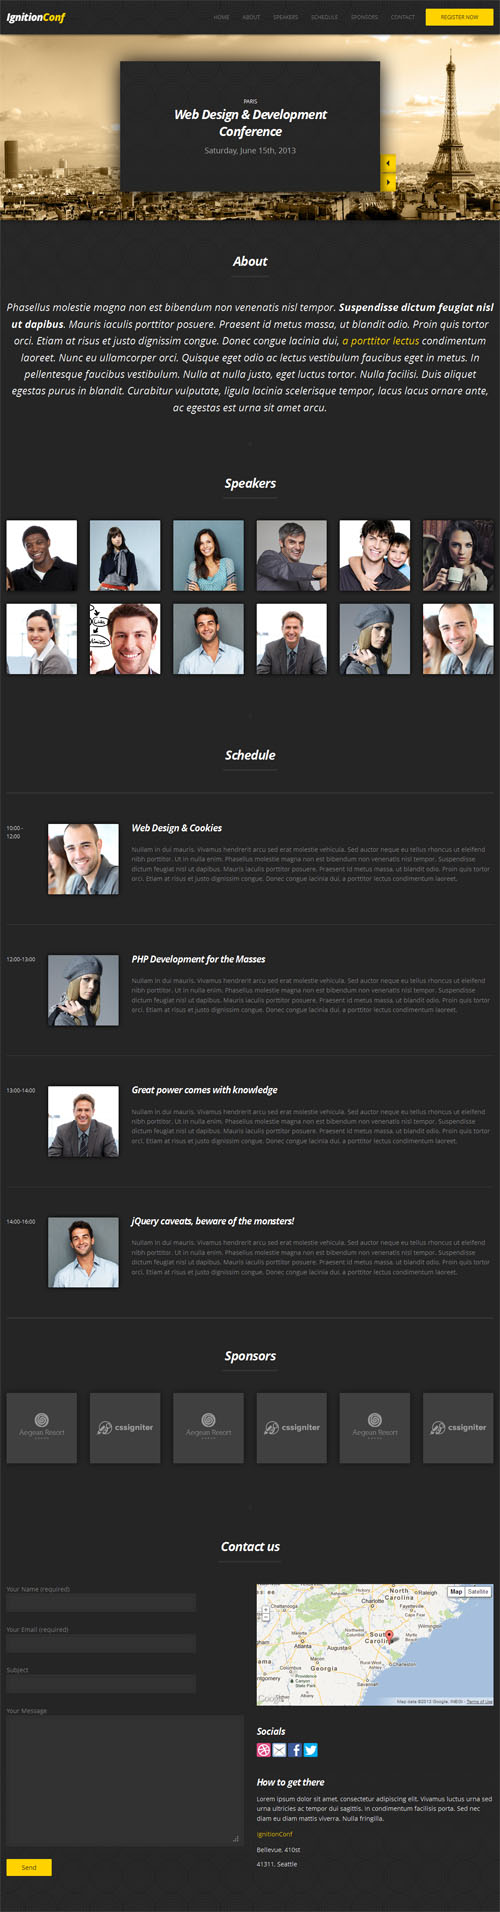 25+ Best Conference & Event WordPress Themes 2018